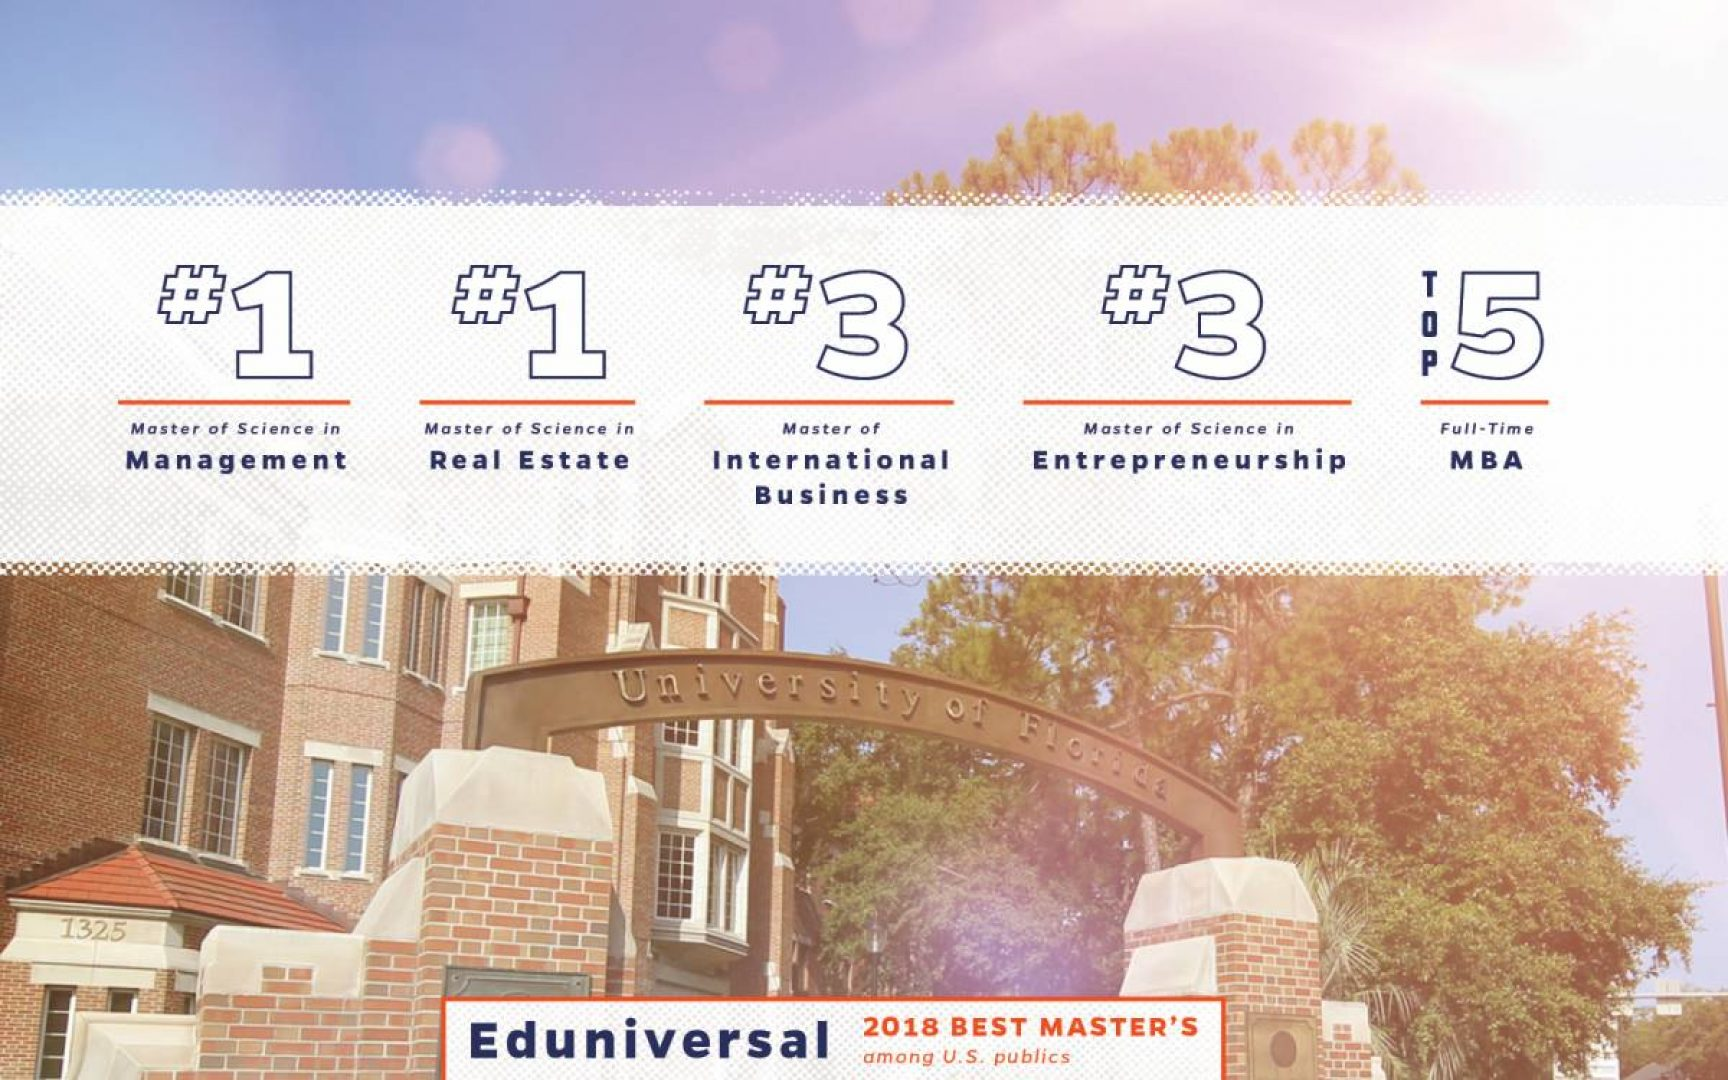 Eduniversal 2018 Best Master's among U.S. publics: #1 Master of Science in Management, #1 Master of Science in Real Estate, #3 Master of International Business, #3 Master of Science in Entrepreneurship, Top 5 Full-Time MBA